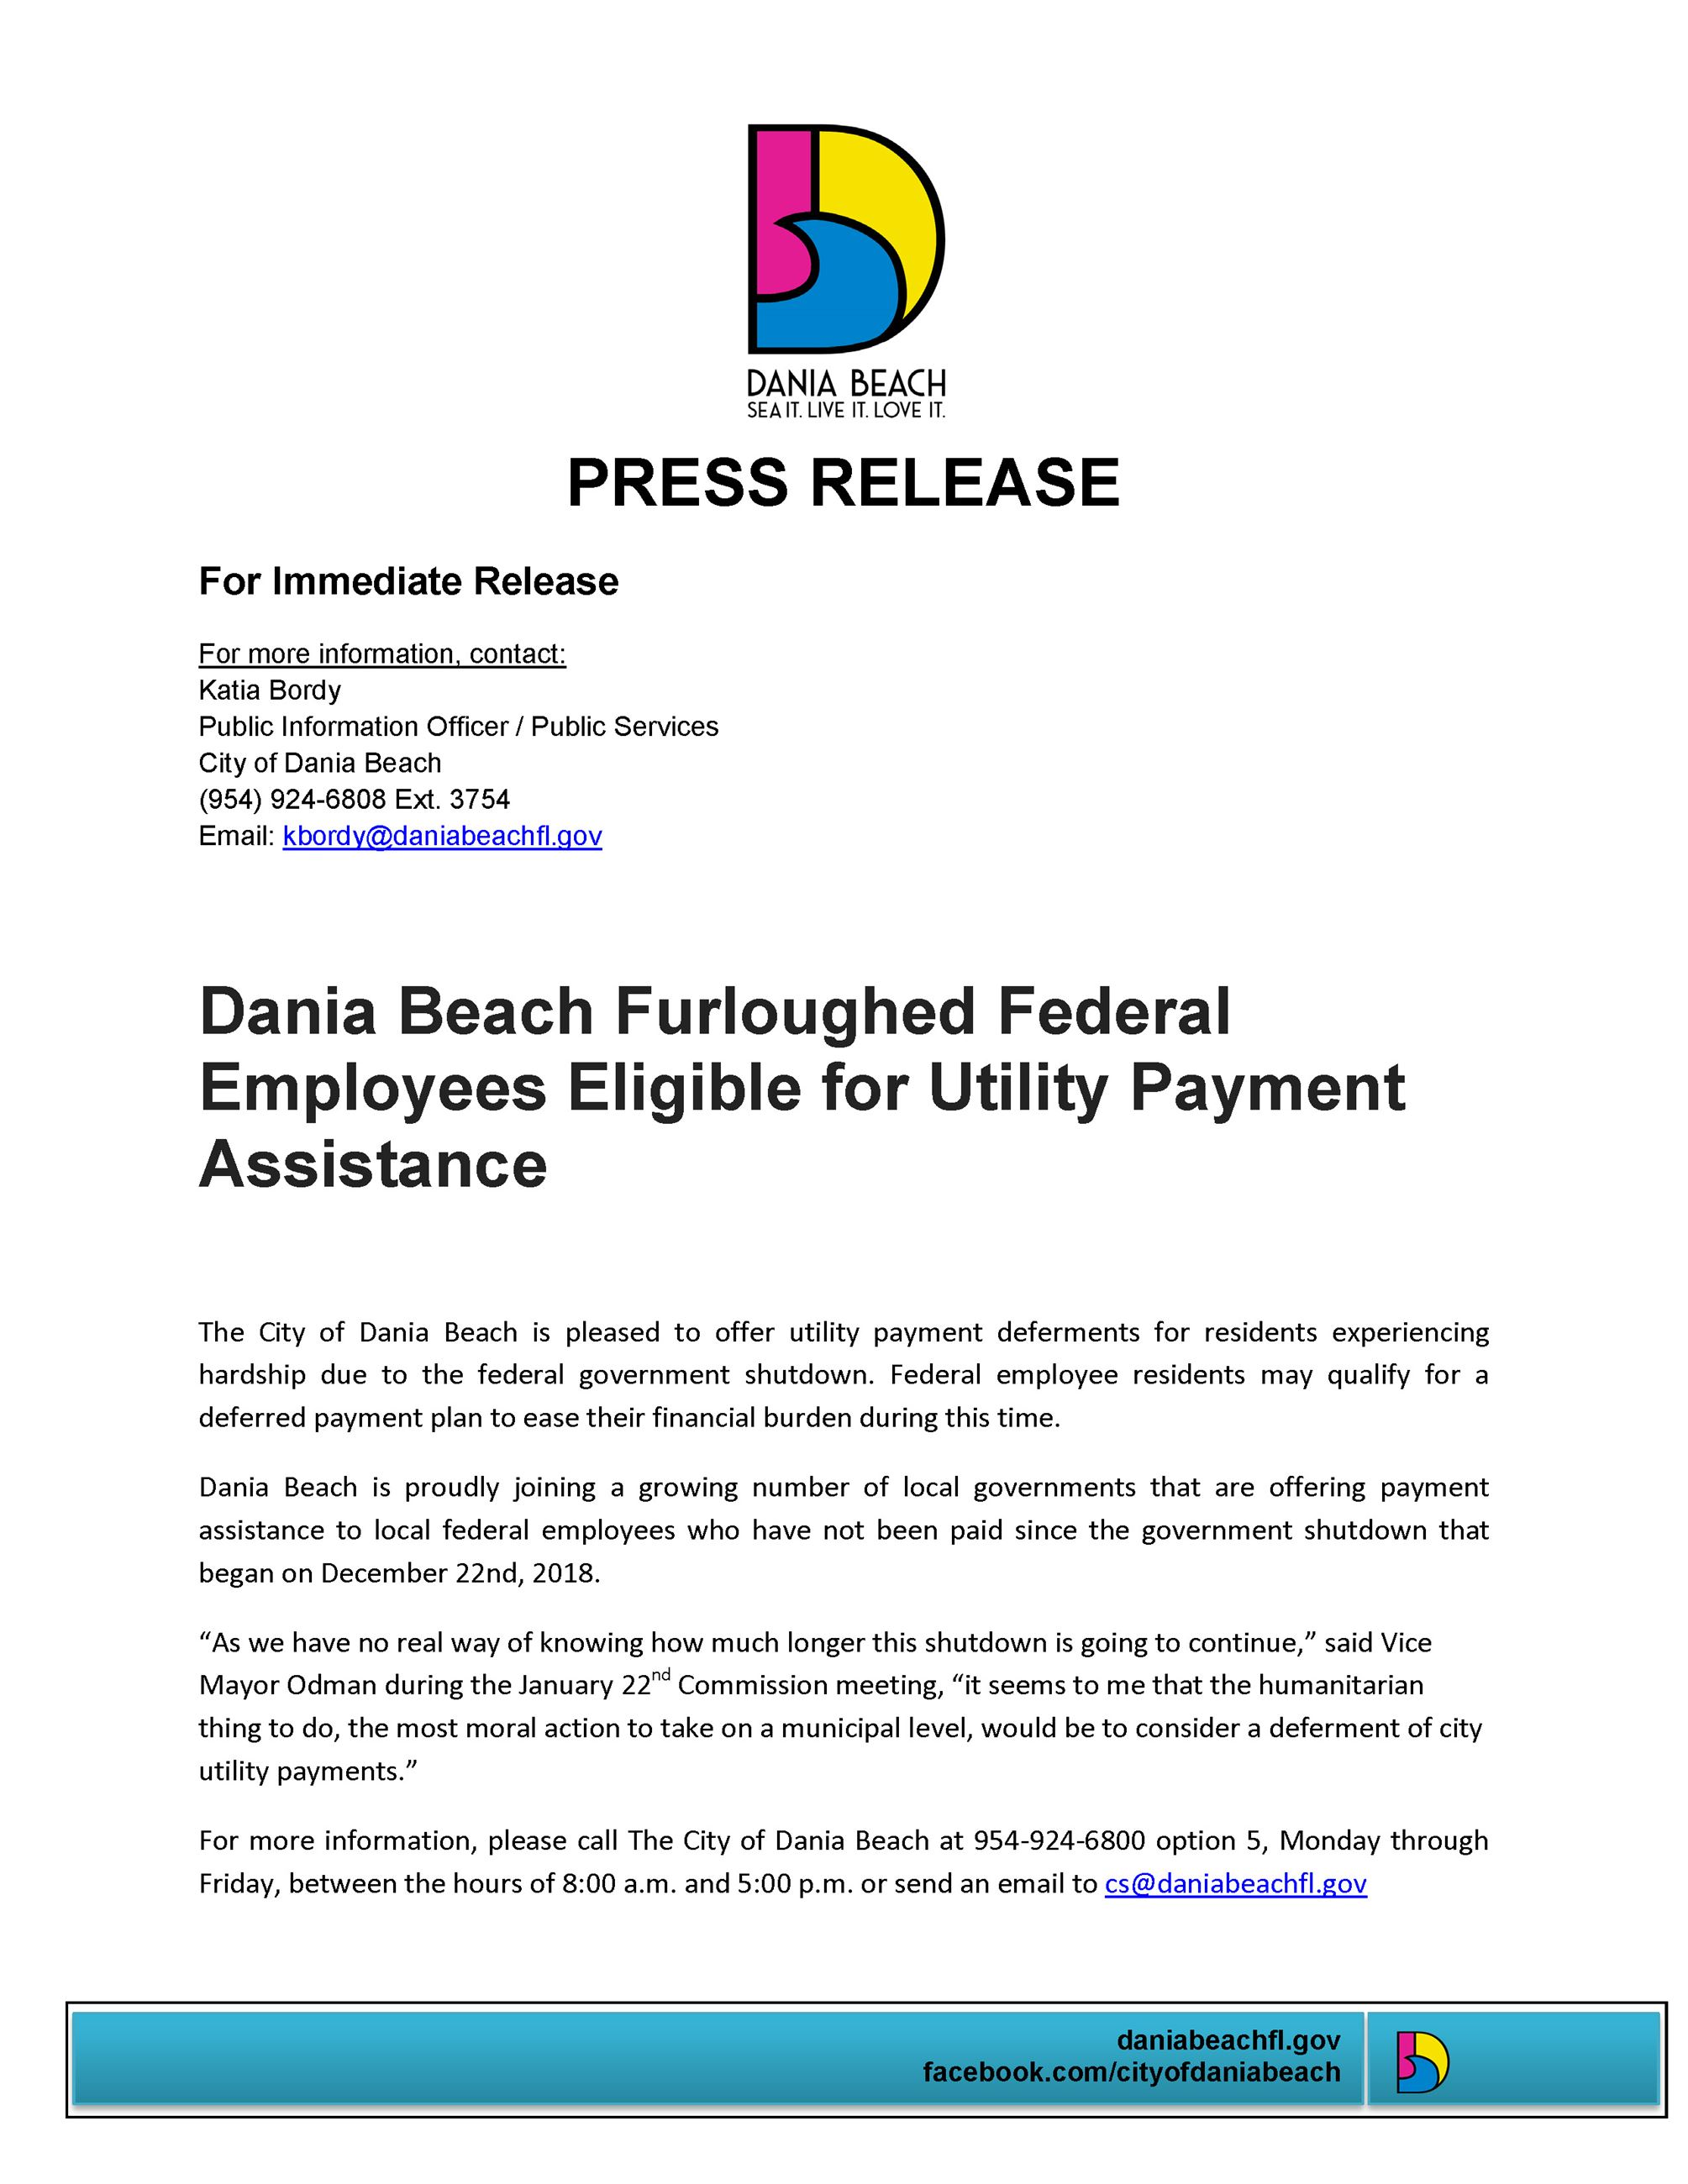 1.25.19 PR Deferred utility payments for furloughed Federal employees